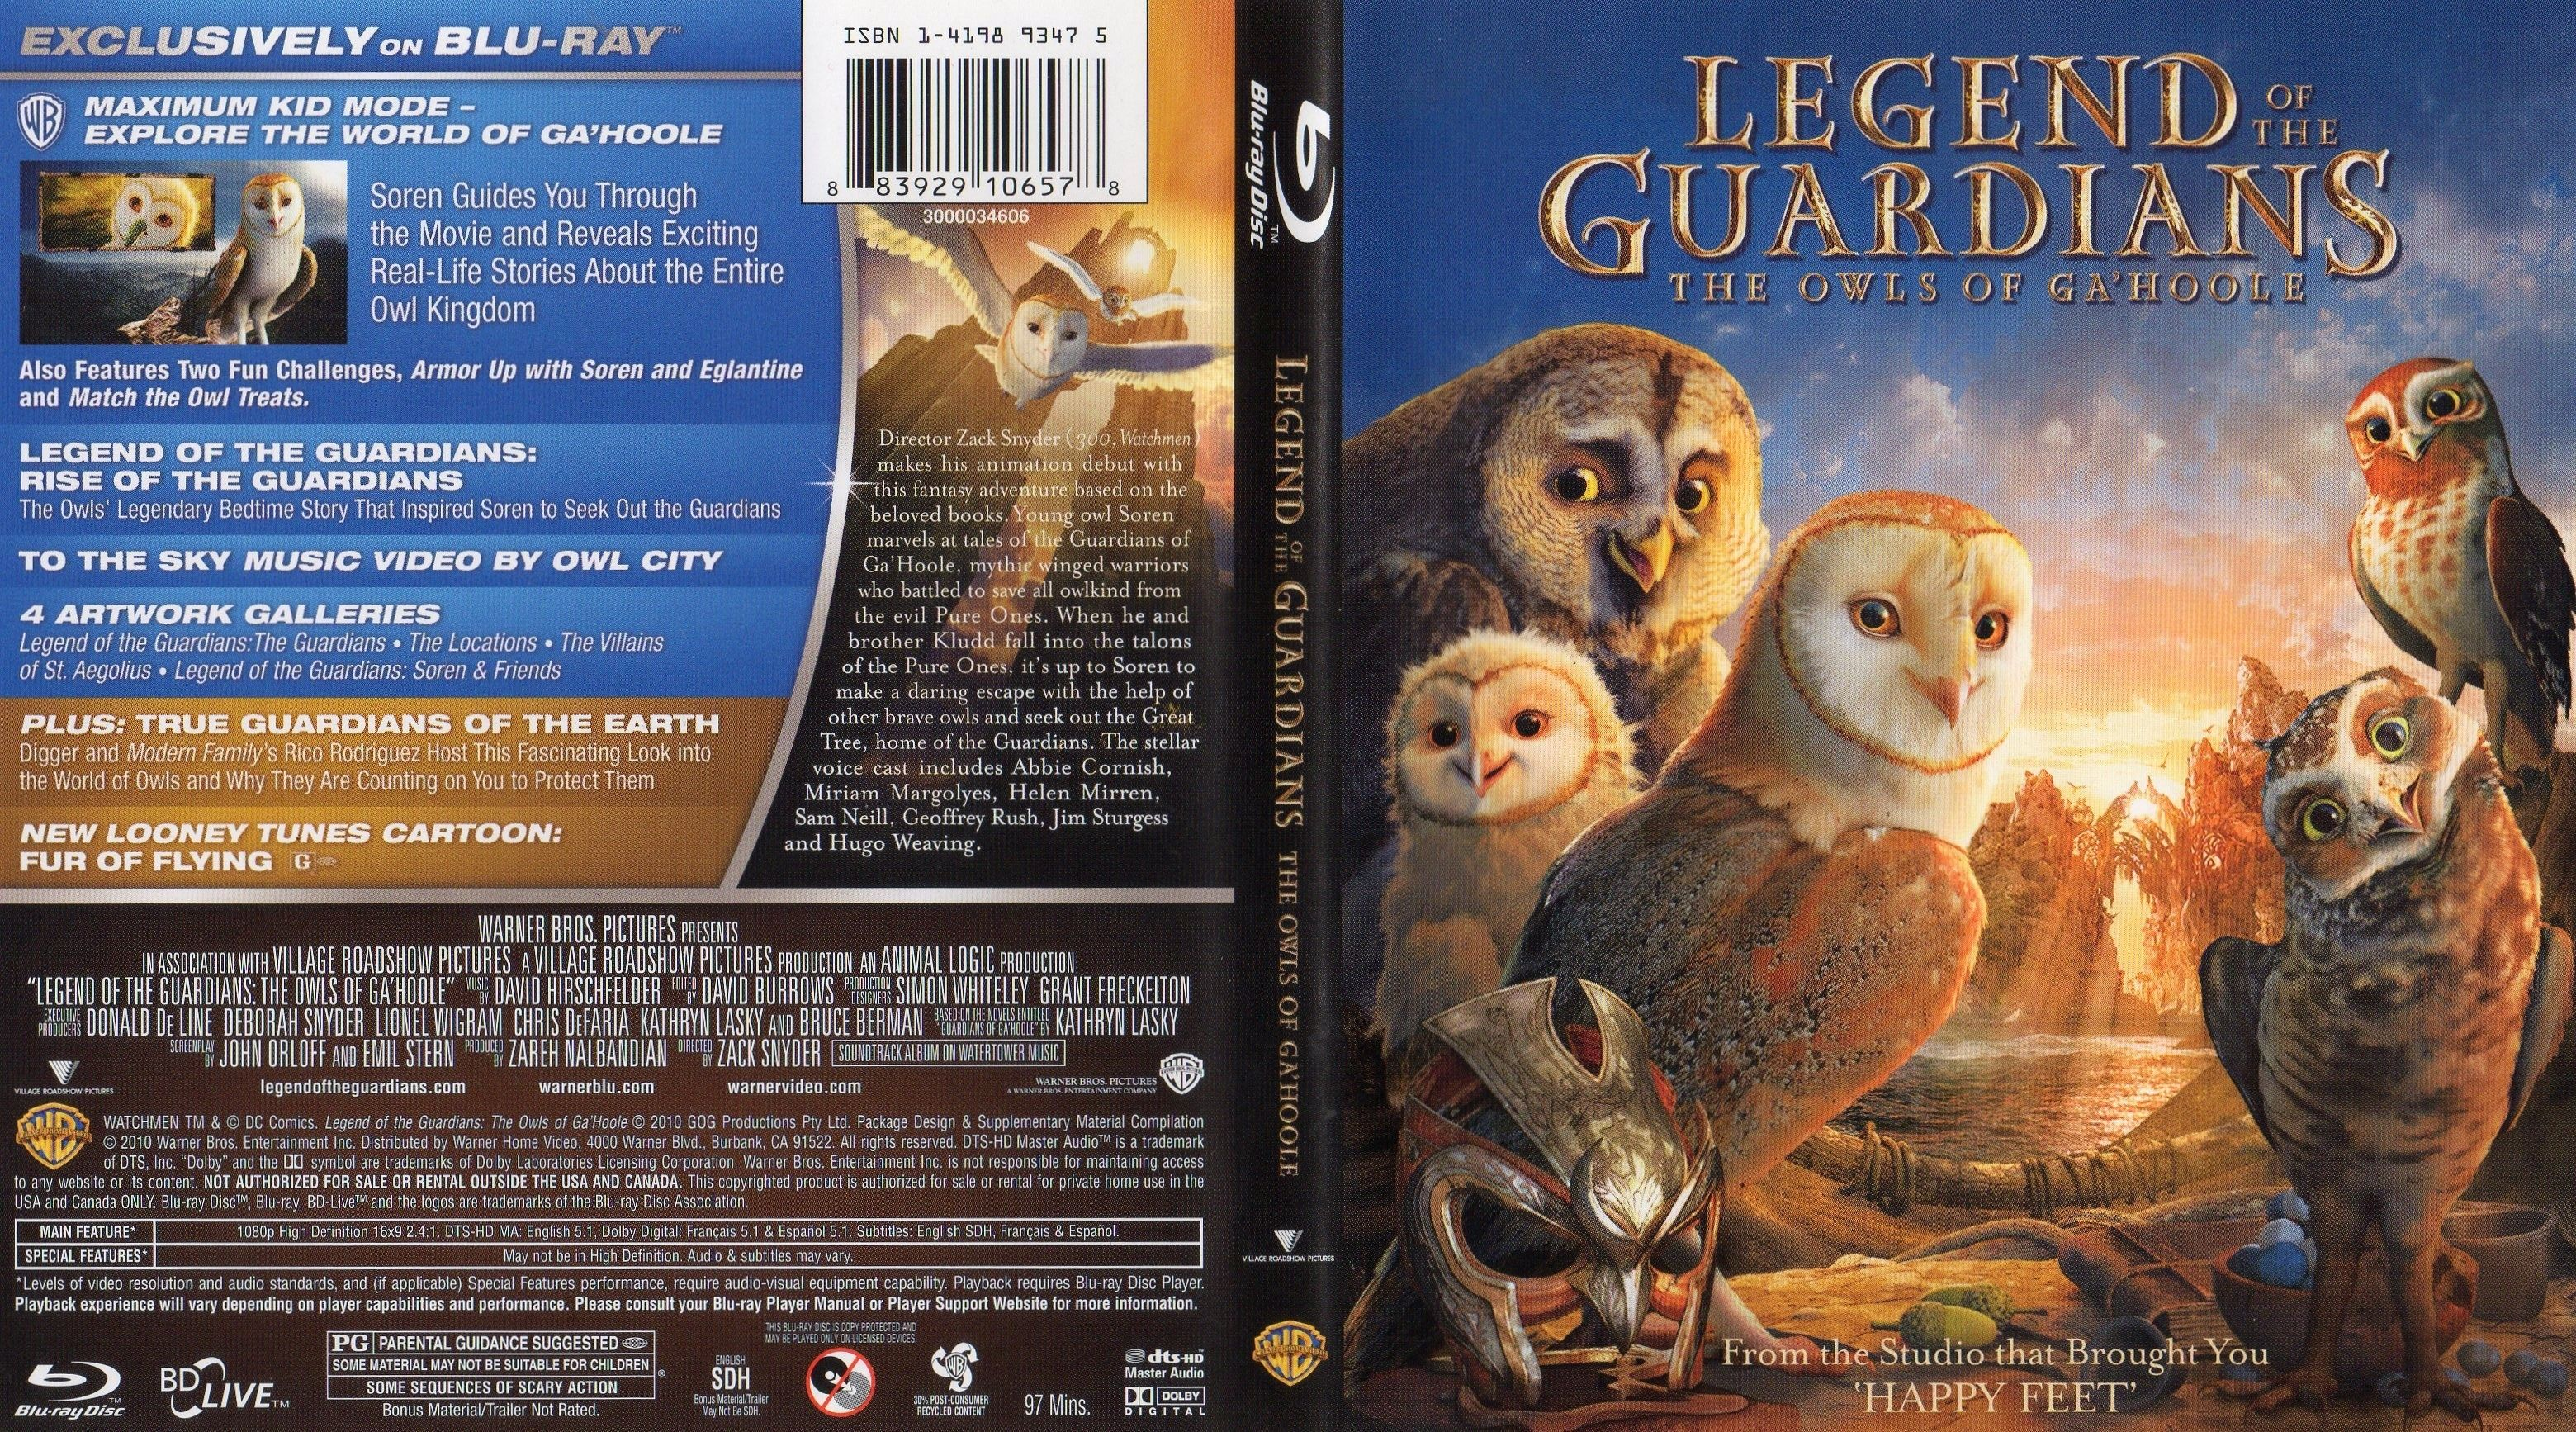 Legend Of The Guardians - Blu-Ray Cover